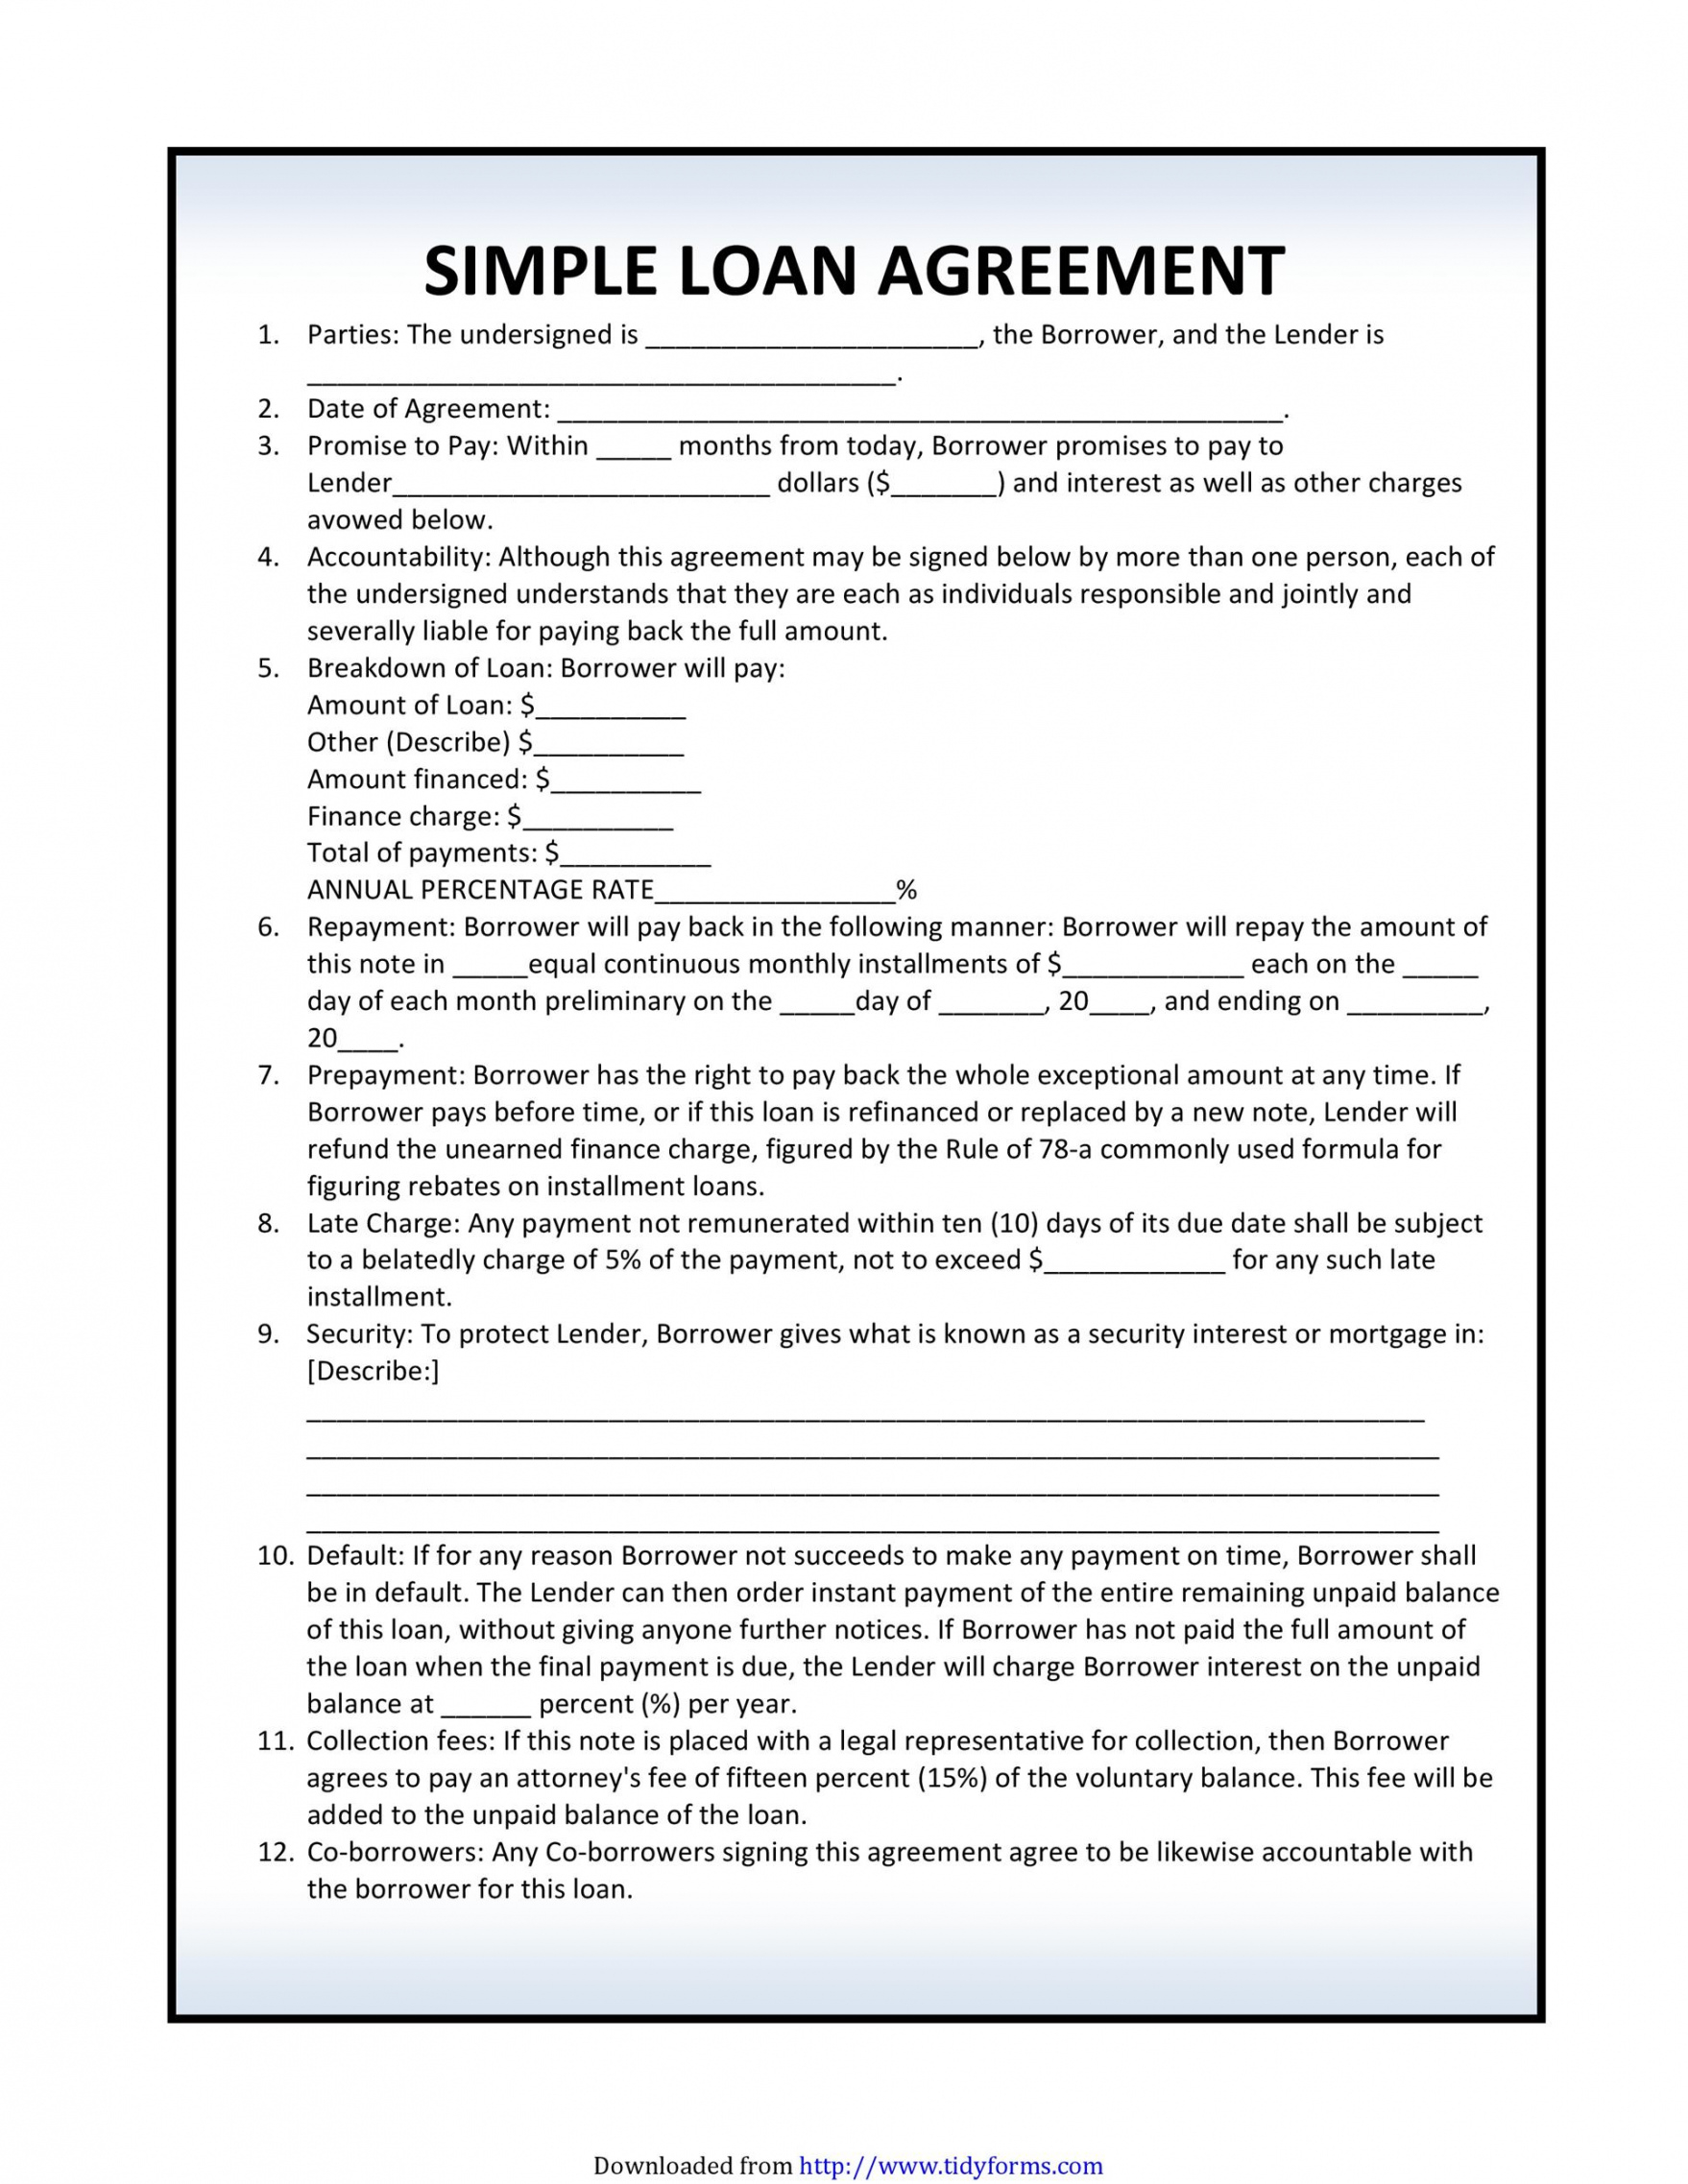 free 40 free loan agreement templates word & pdf ᐅ templatelab art loan agreement template excel